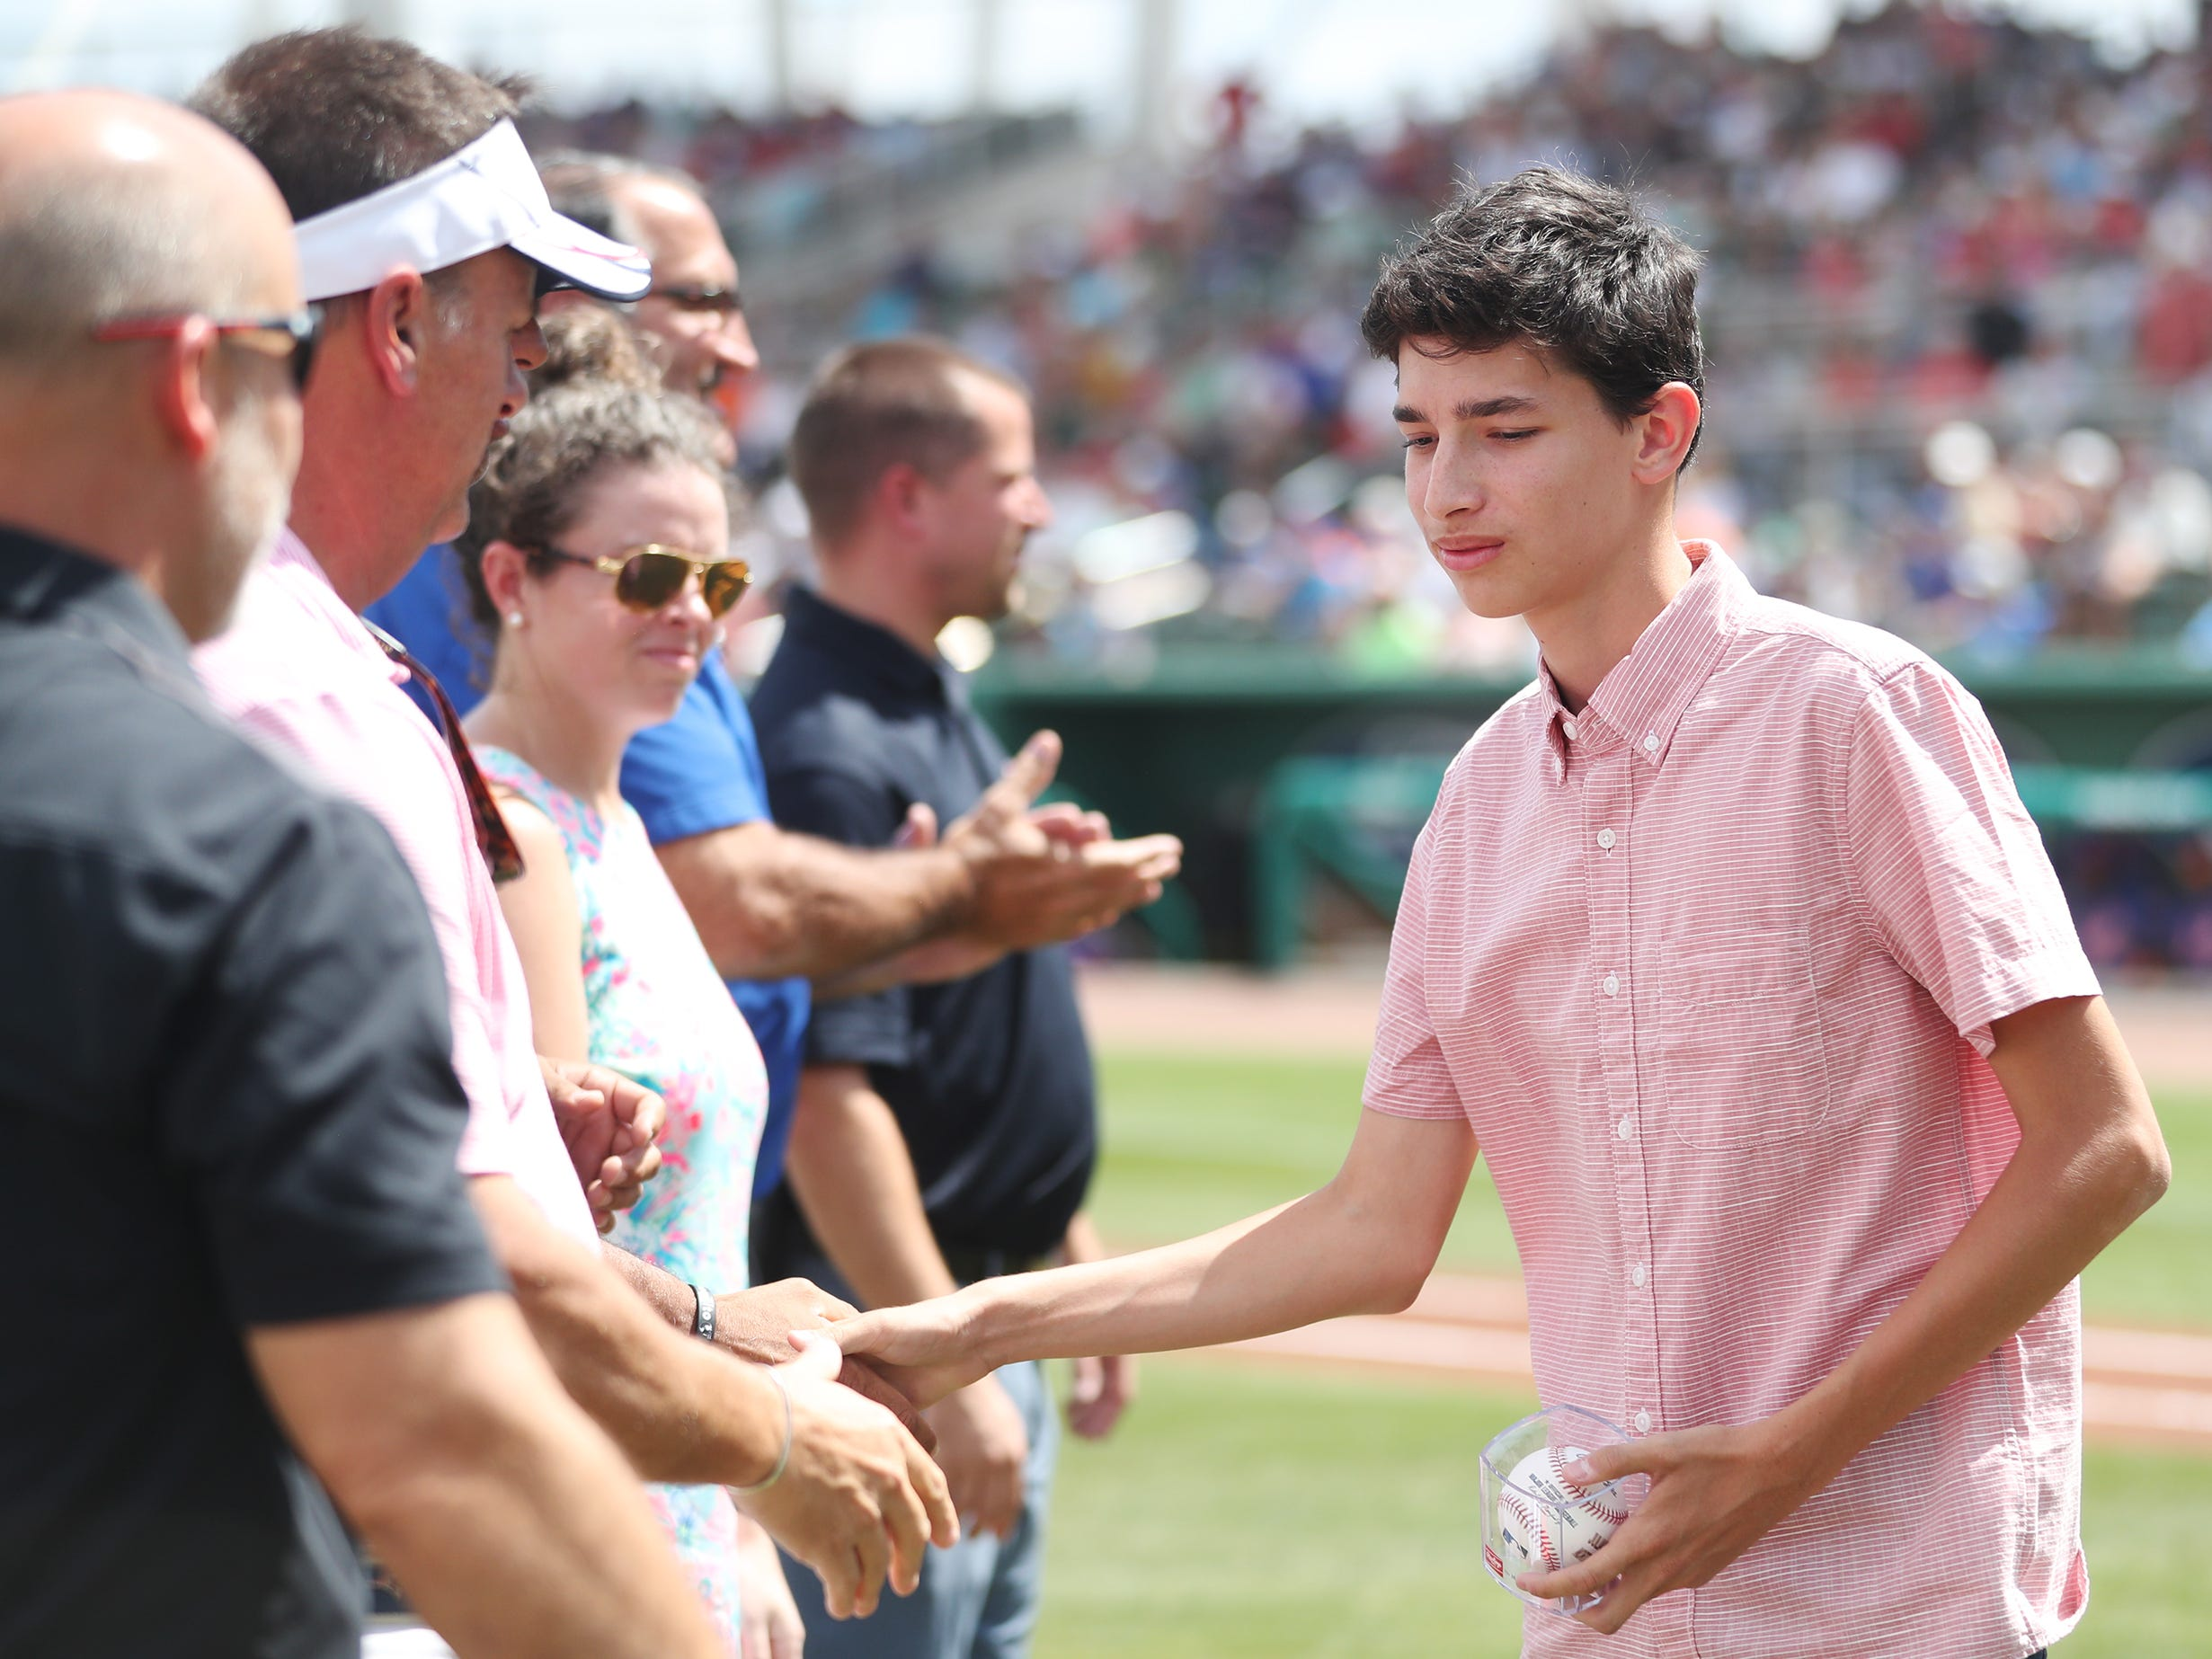 North Fort Myers High School's Julian Montoya was one of 13 Lee County public high school seniors that received a $5,000 scholarship from the Boston Red Sox Foundation on Saturday before the team's game against the New York Mets at JetBlue Park in Fort Myers. The students' academic achievements and community service efforts were the basis for the honor.